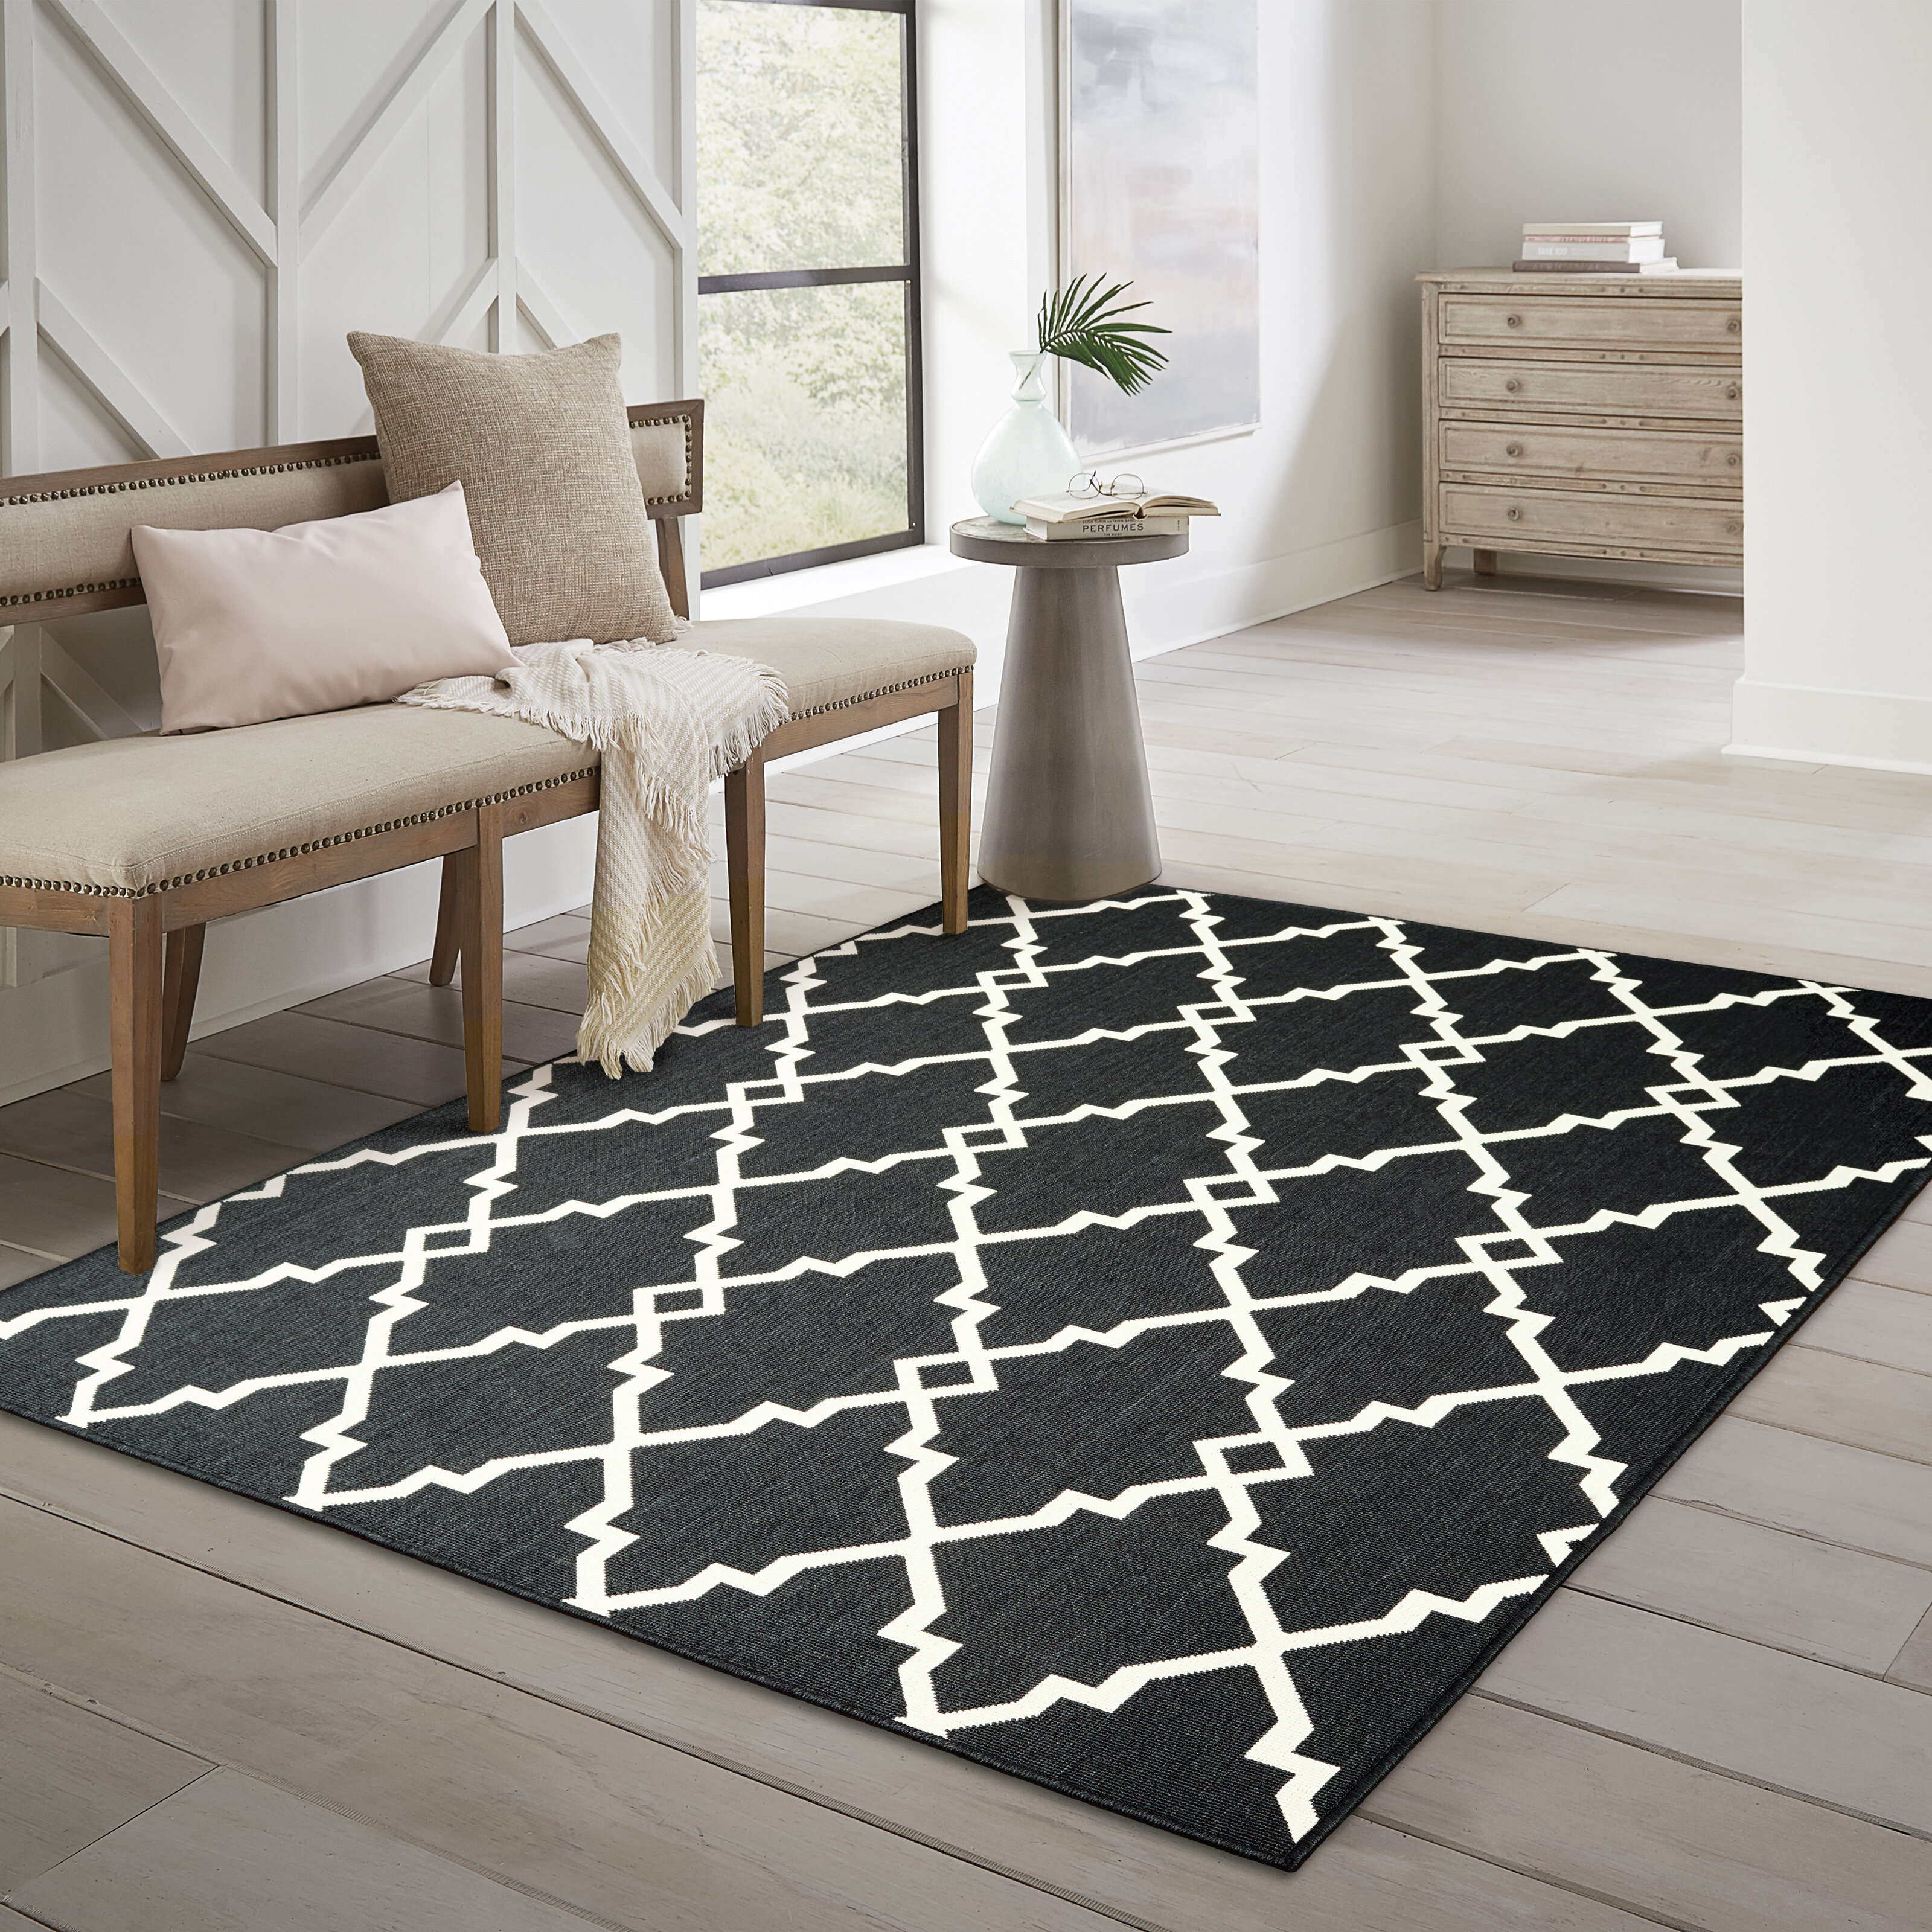 Charlton Home Salerno Geometric Black Indoor Outdoor Area Rug Reviews Wayfair